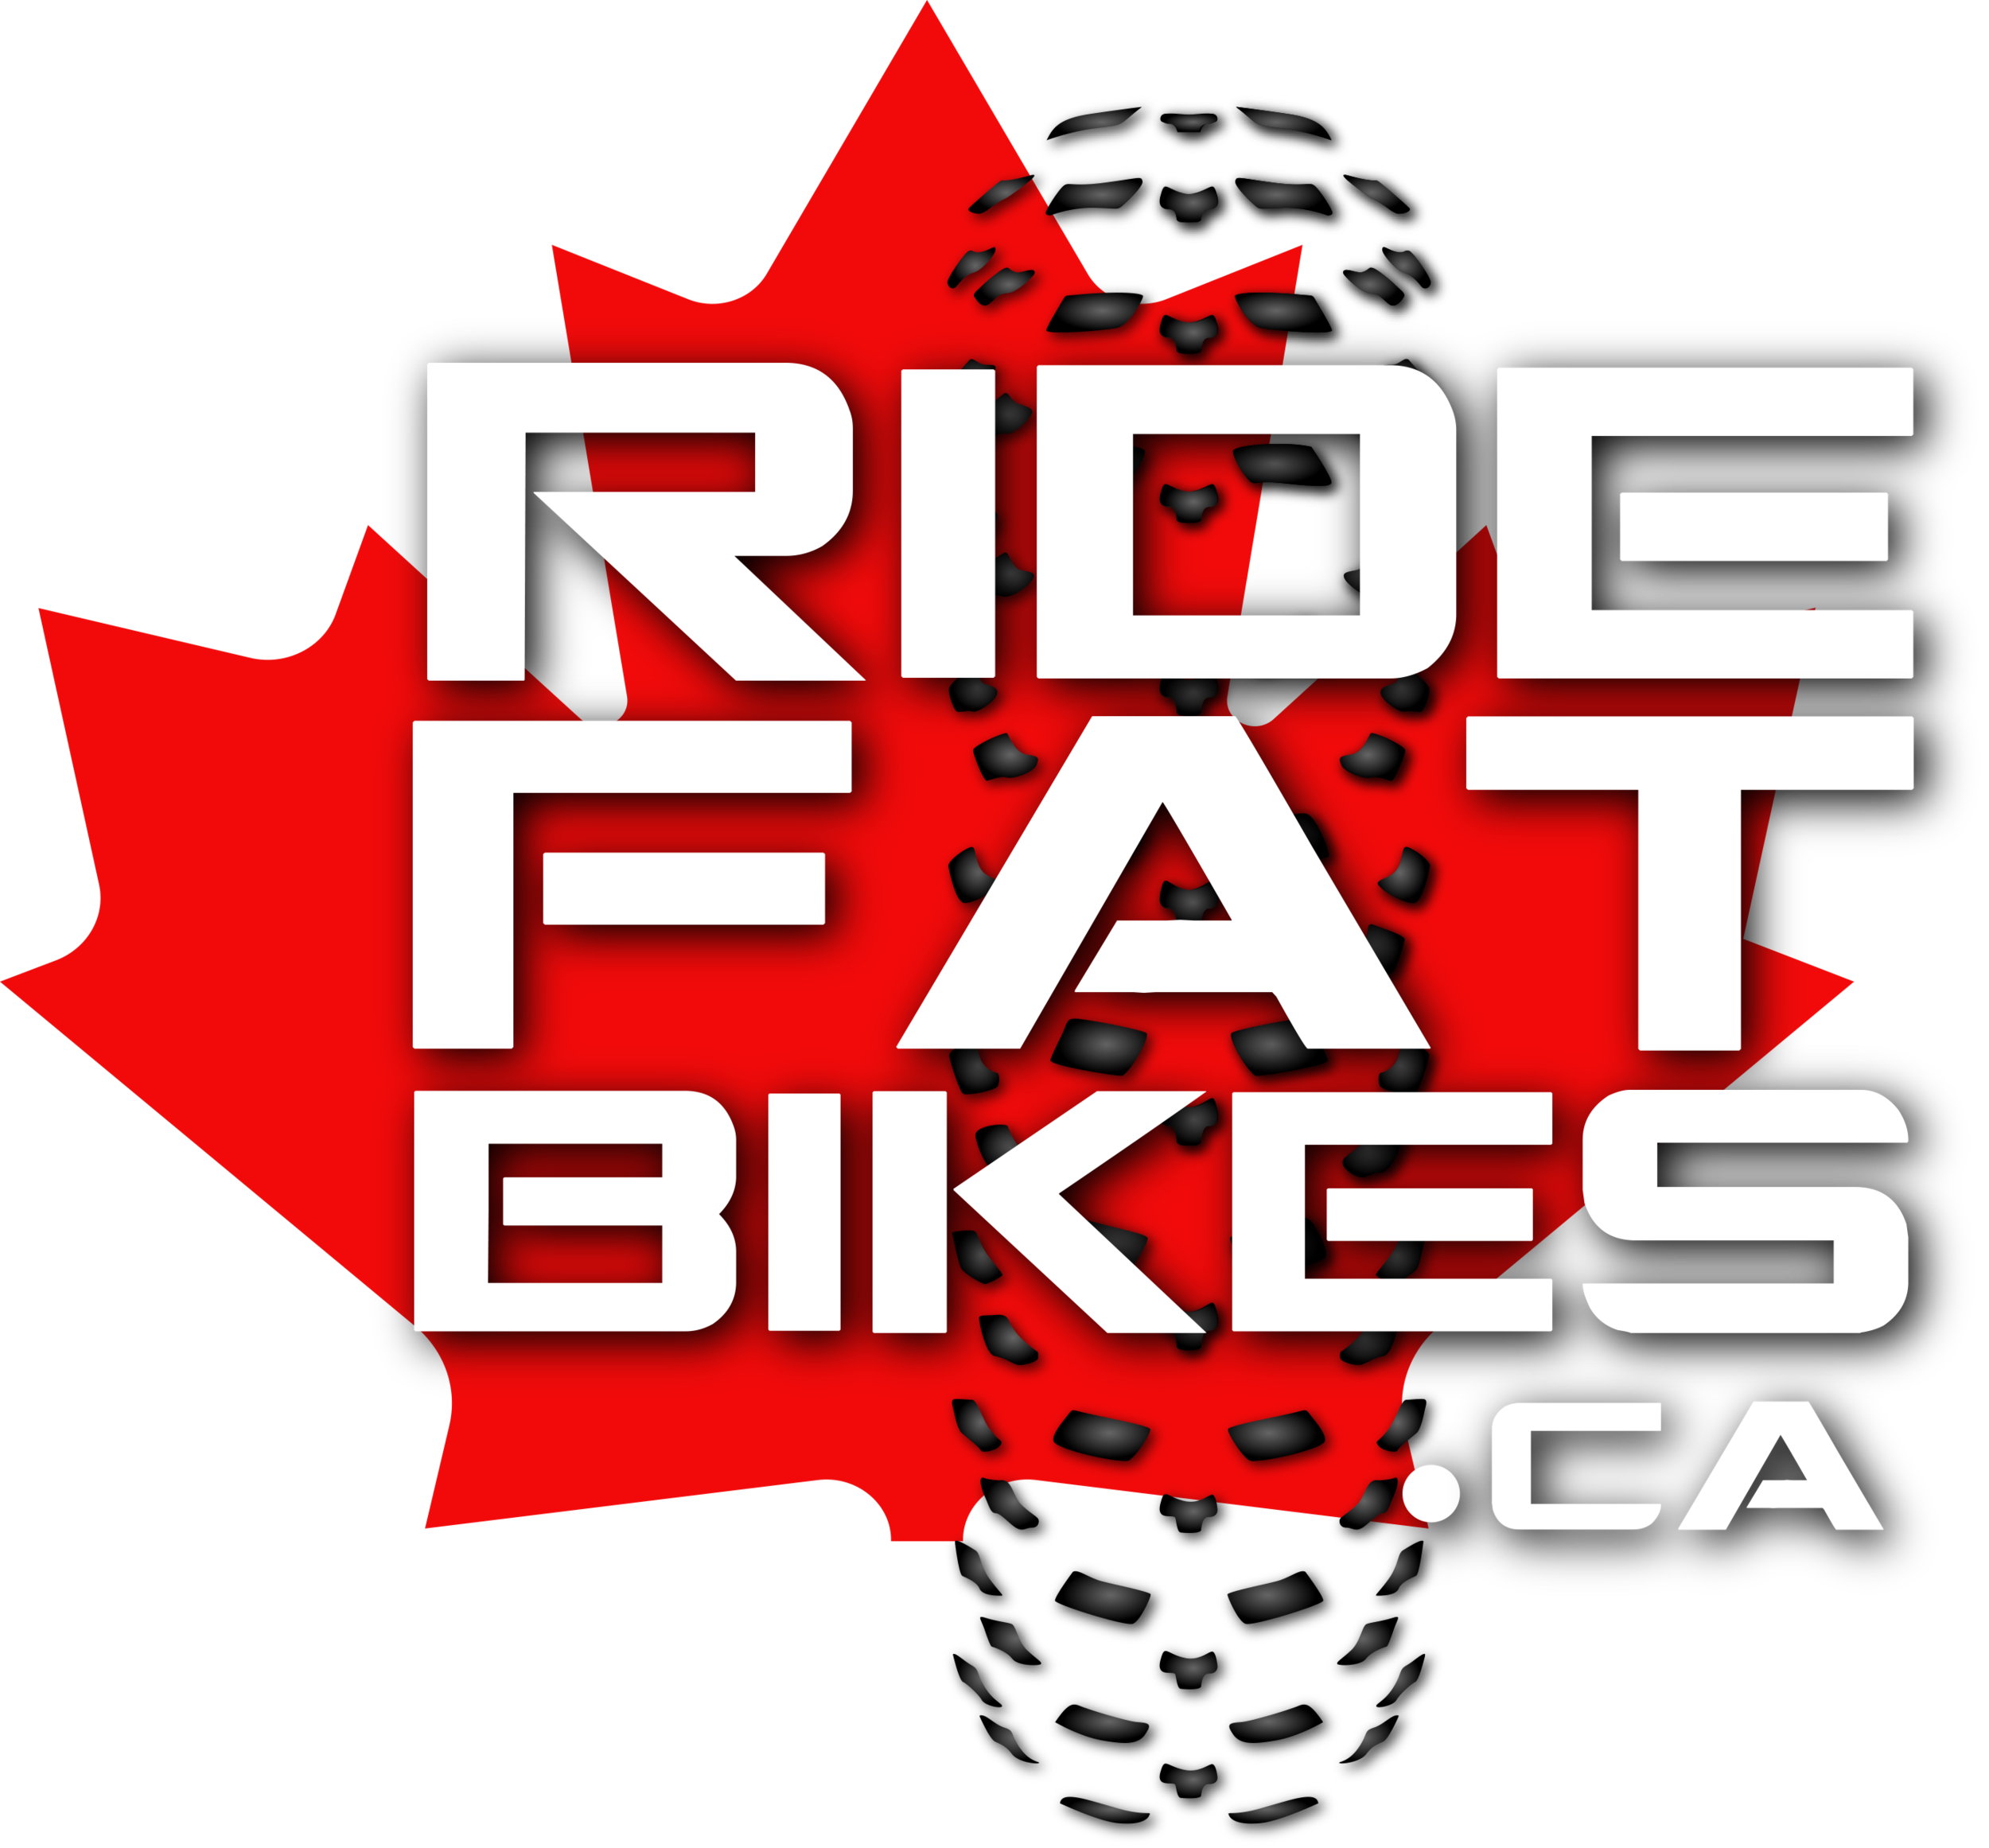 Best Fat Bike options - What riding style suits you - custom built fat bikes in Canada - Ridefatbikes.ca